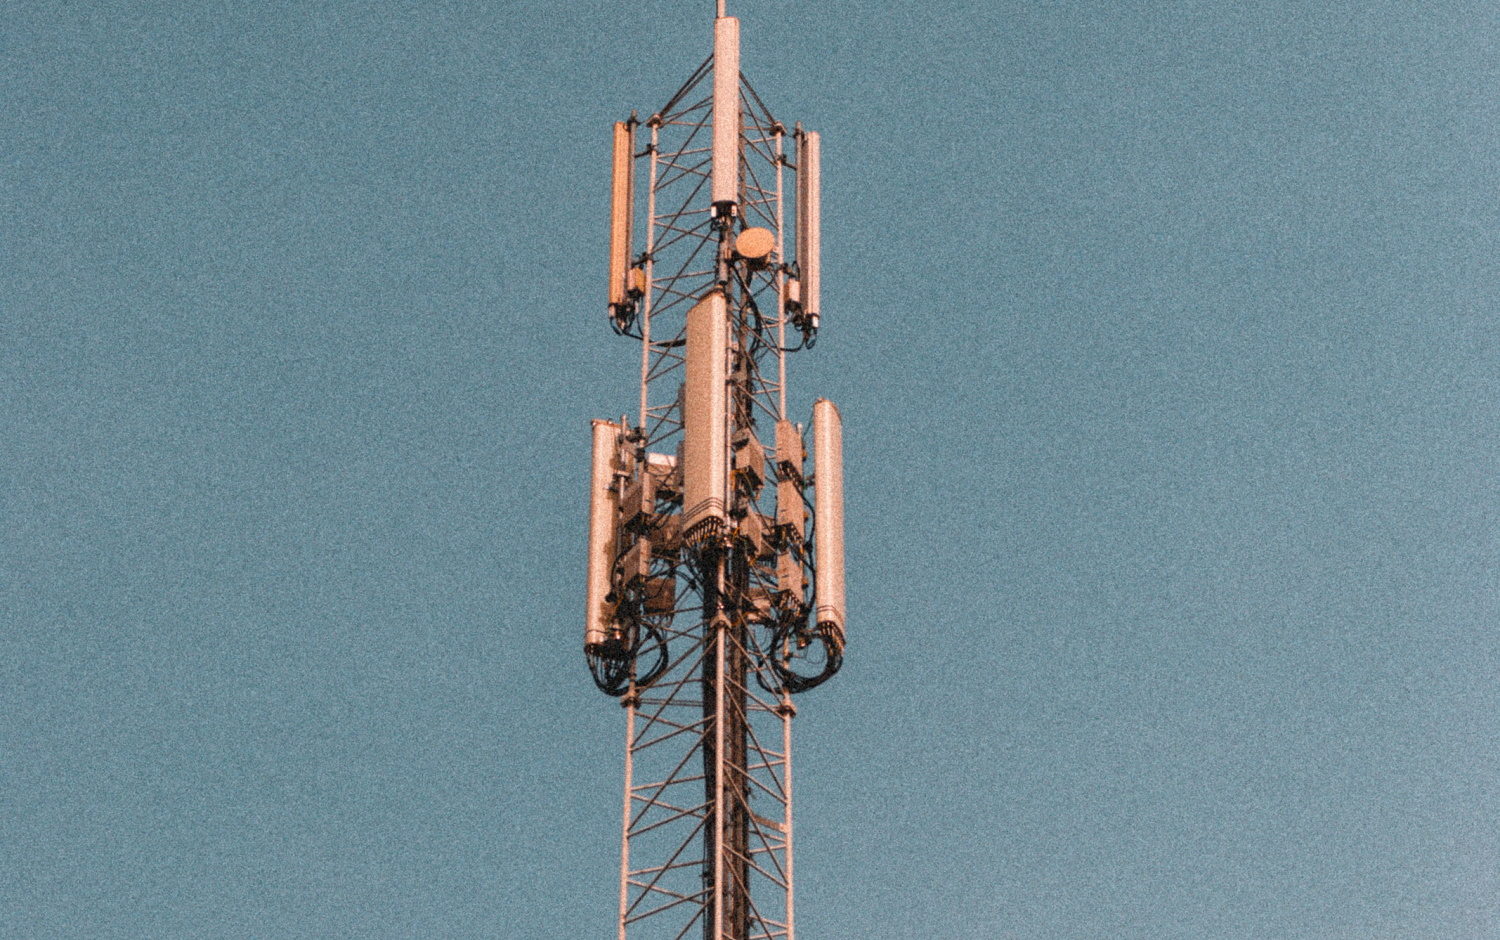 New 5G protocol vulnerabilities allow location tracking